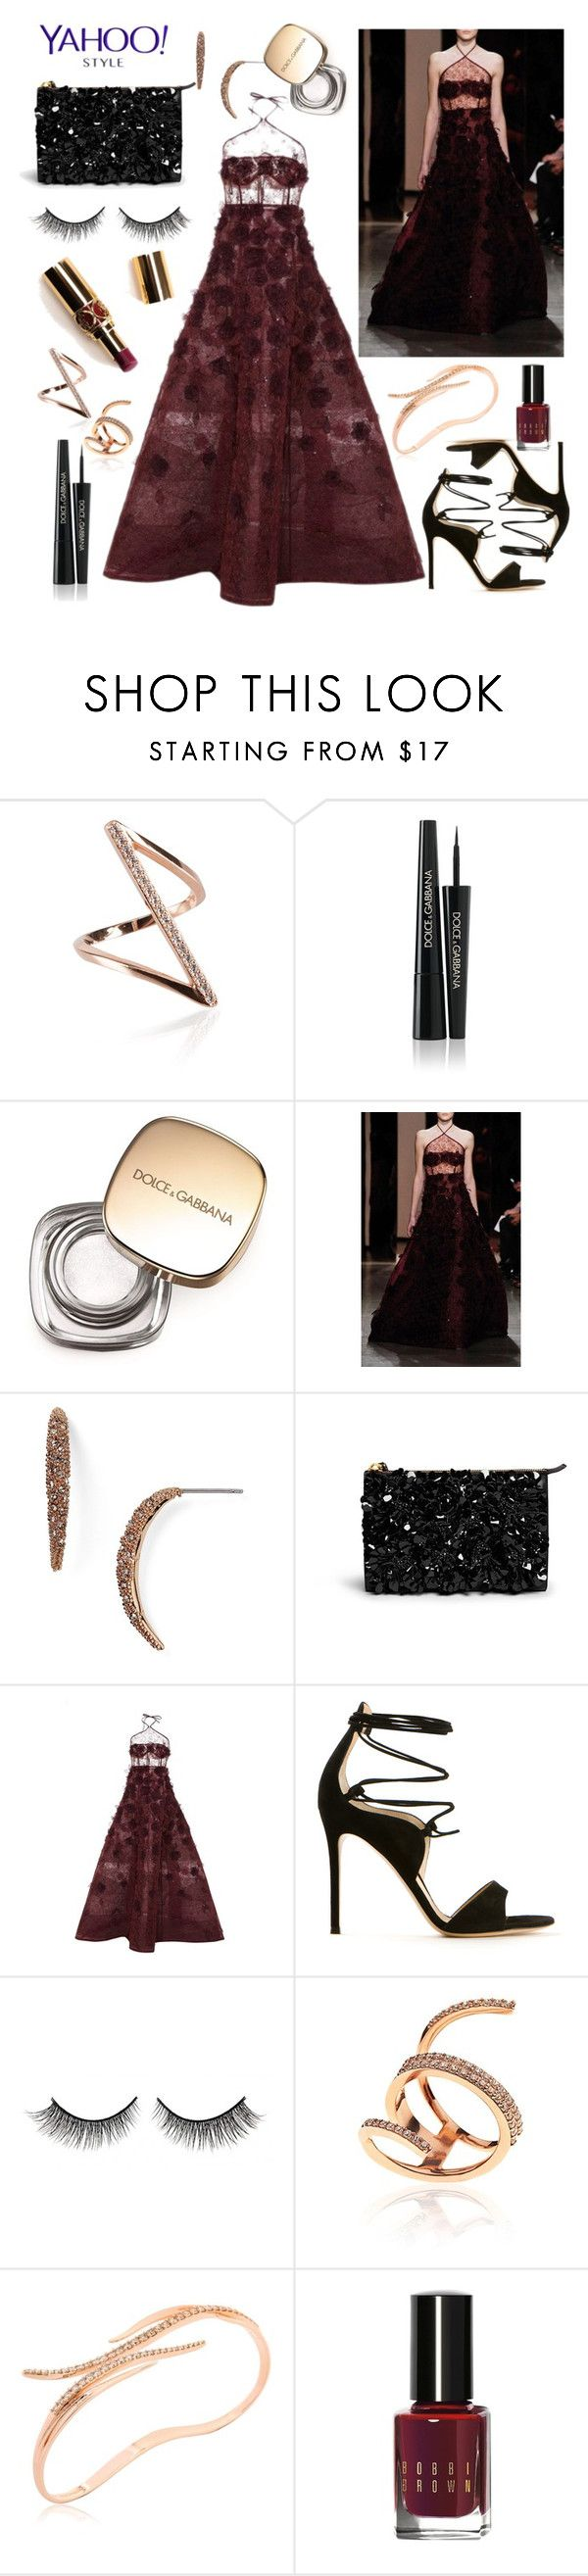 MET GALA: China -Through The Looking Glass by riverinthedesert on Polyvore featuring Oscar de la Renta, Gianvito Rossi, Marni, Cristina Ortiz, Alexis Bittar, Dolce&Gabbana, Rimini, Bobbi Brown Cosmetics, Yves Saint Laurent and contestentry